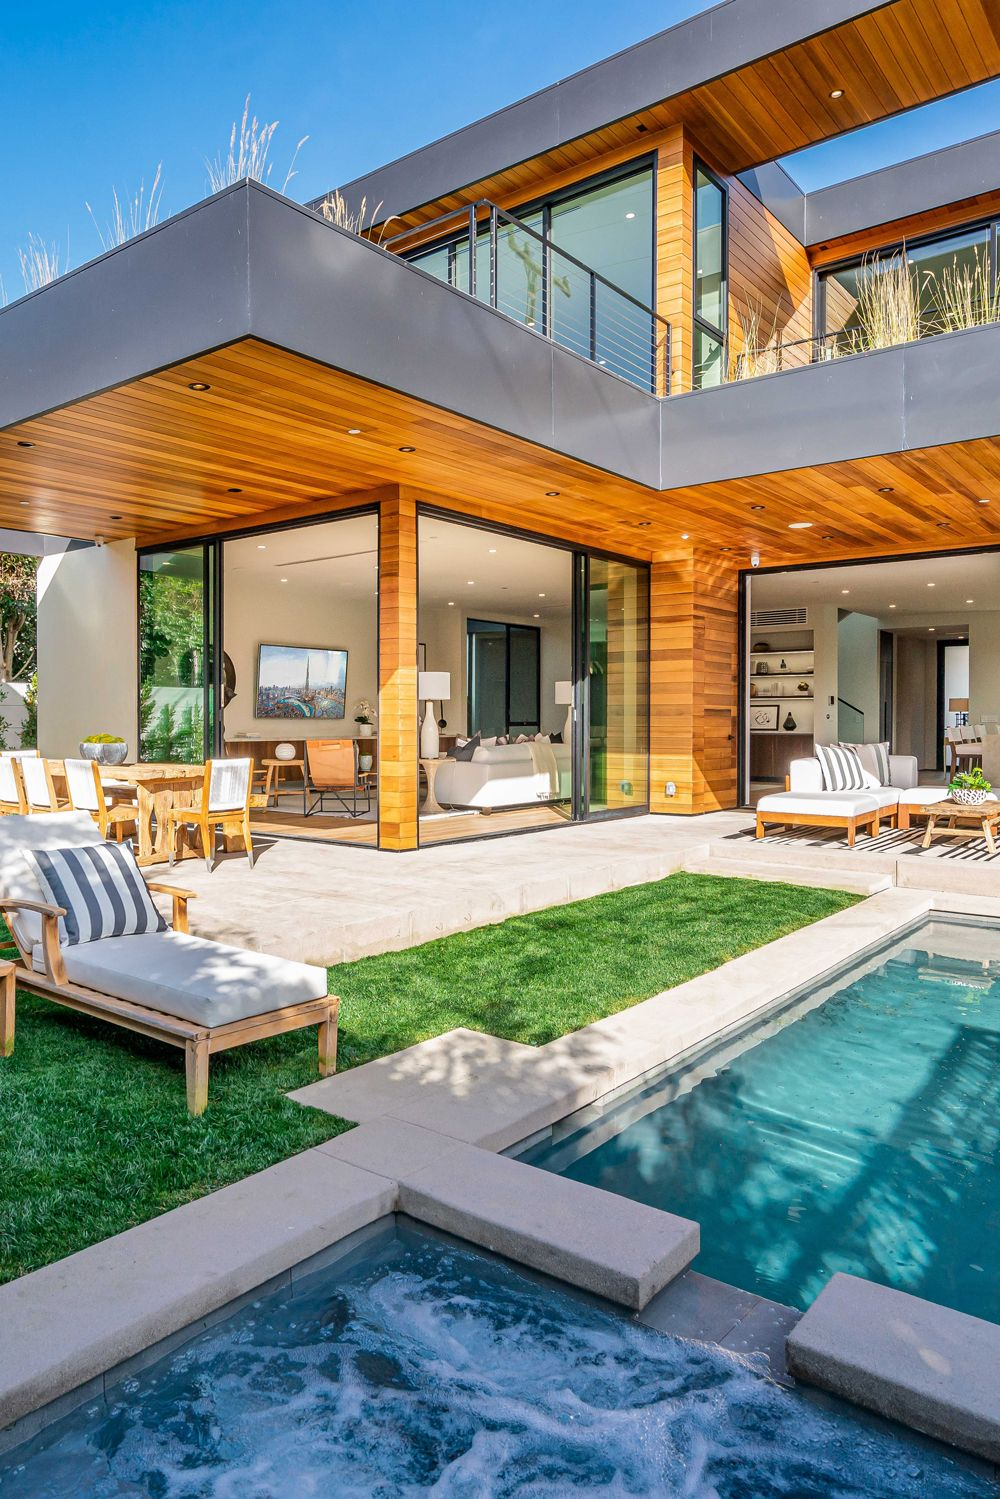 Tour of John Legend and Chrissy Teigen's Swish Abode